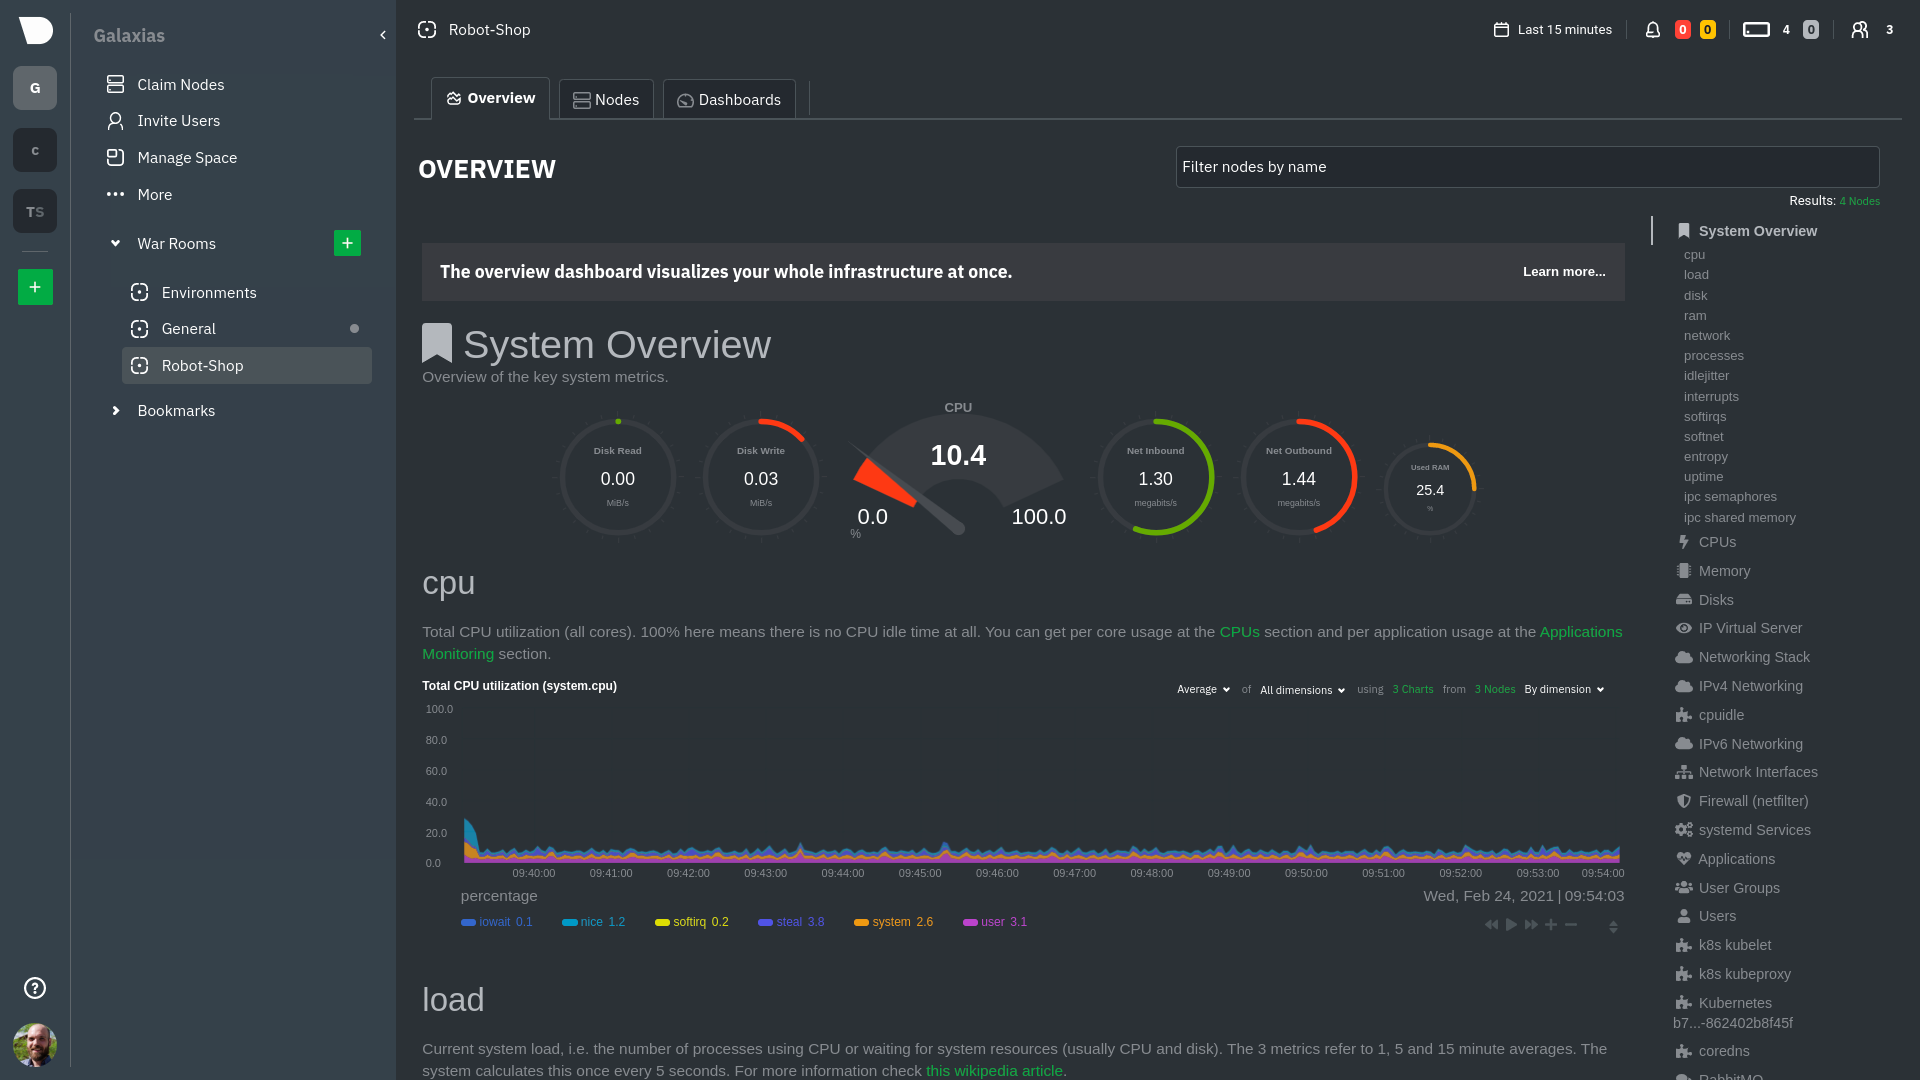 Netdata's Kubernetes monitoring dashboard